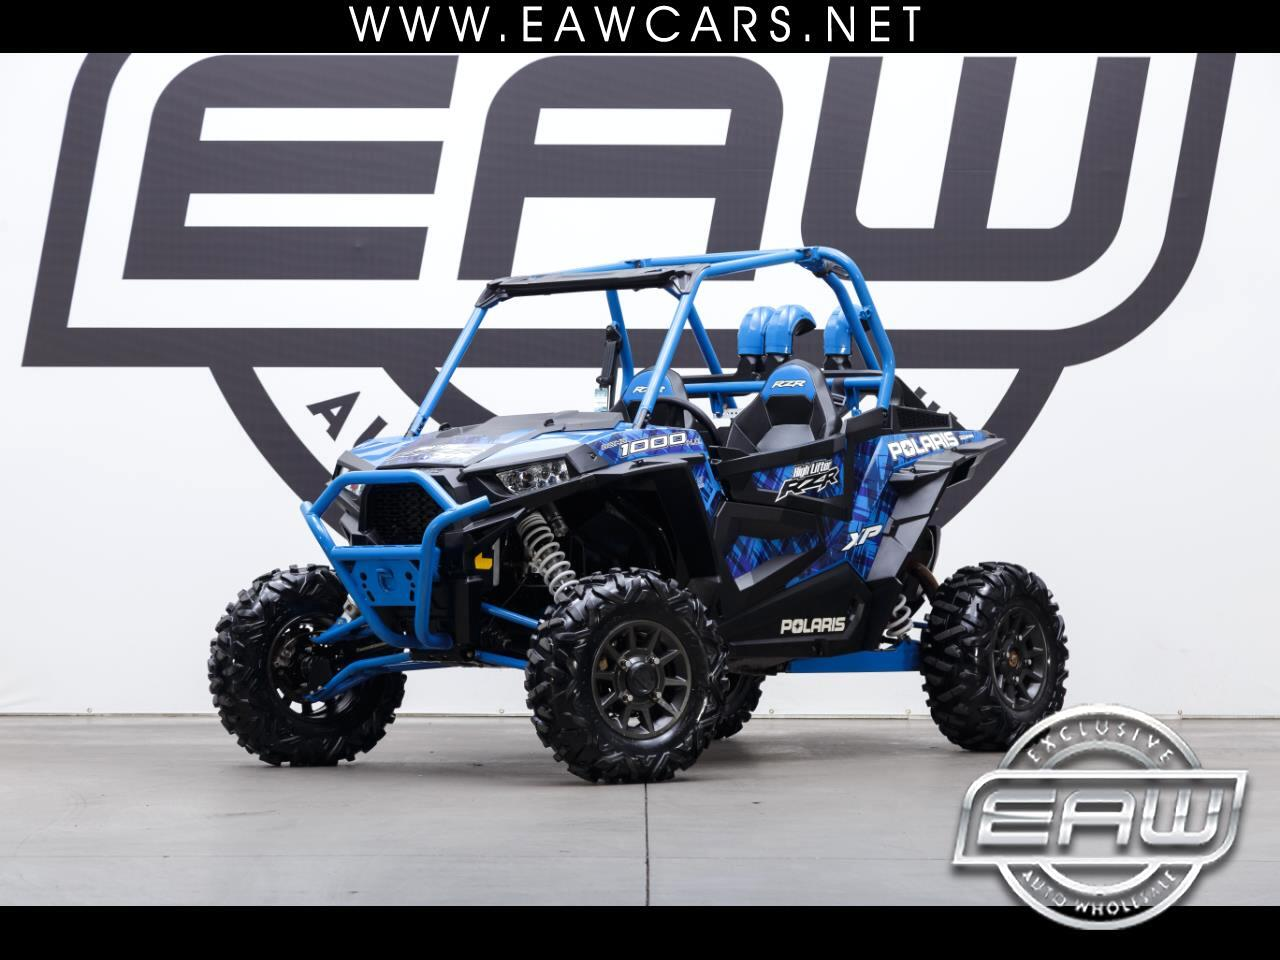 2017 Polaris RZR XP 1000 EPS ELECTRONIC POWER STEERING